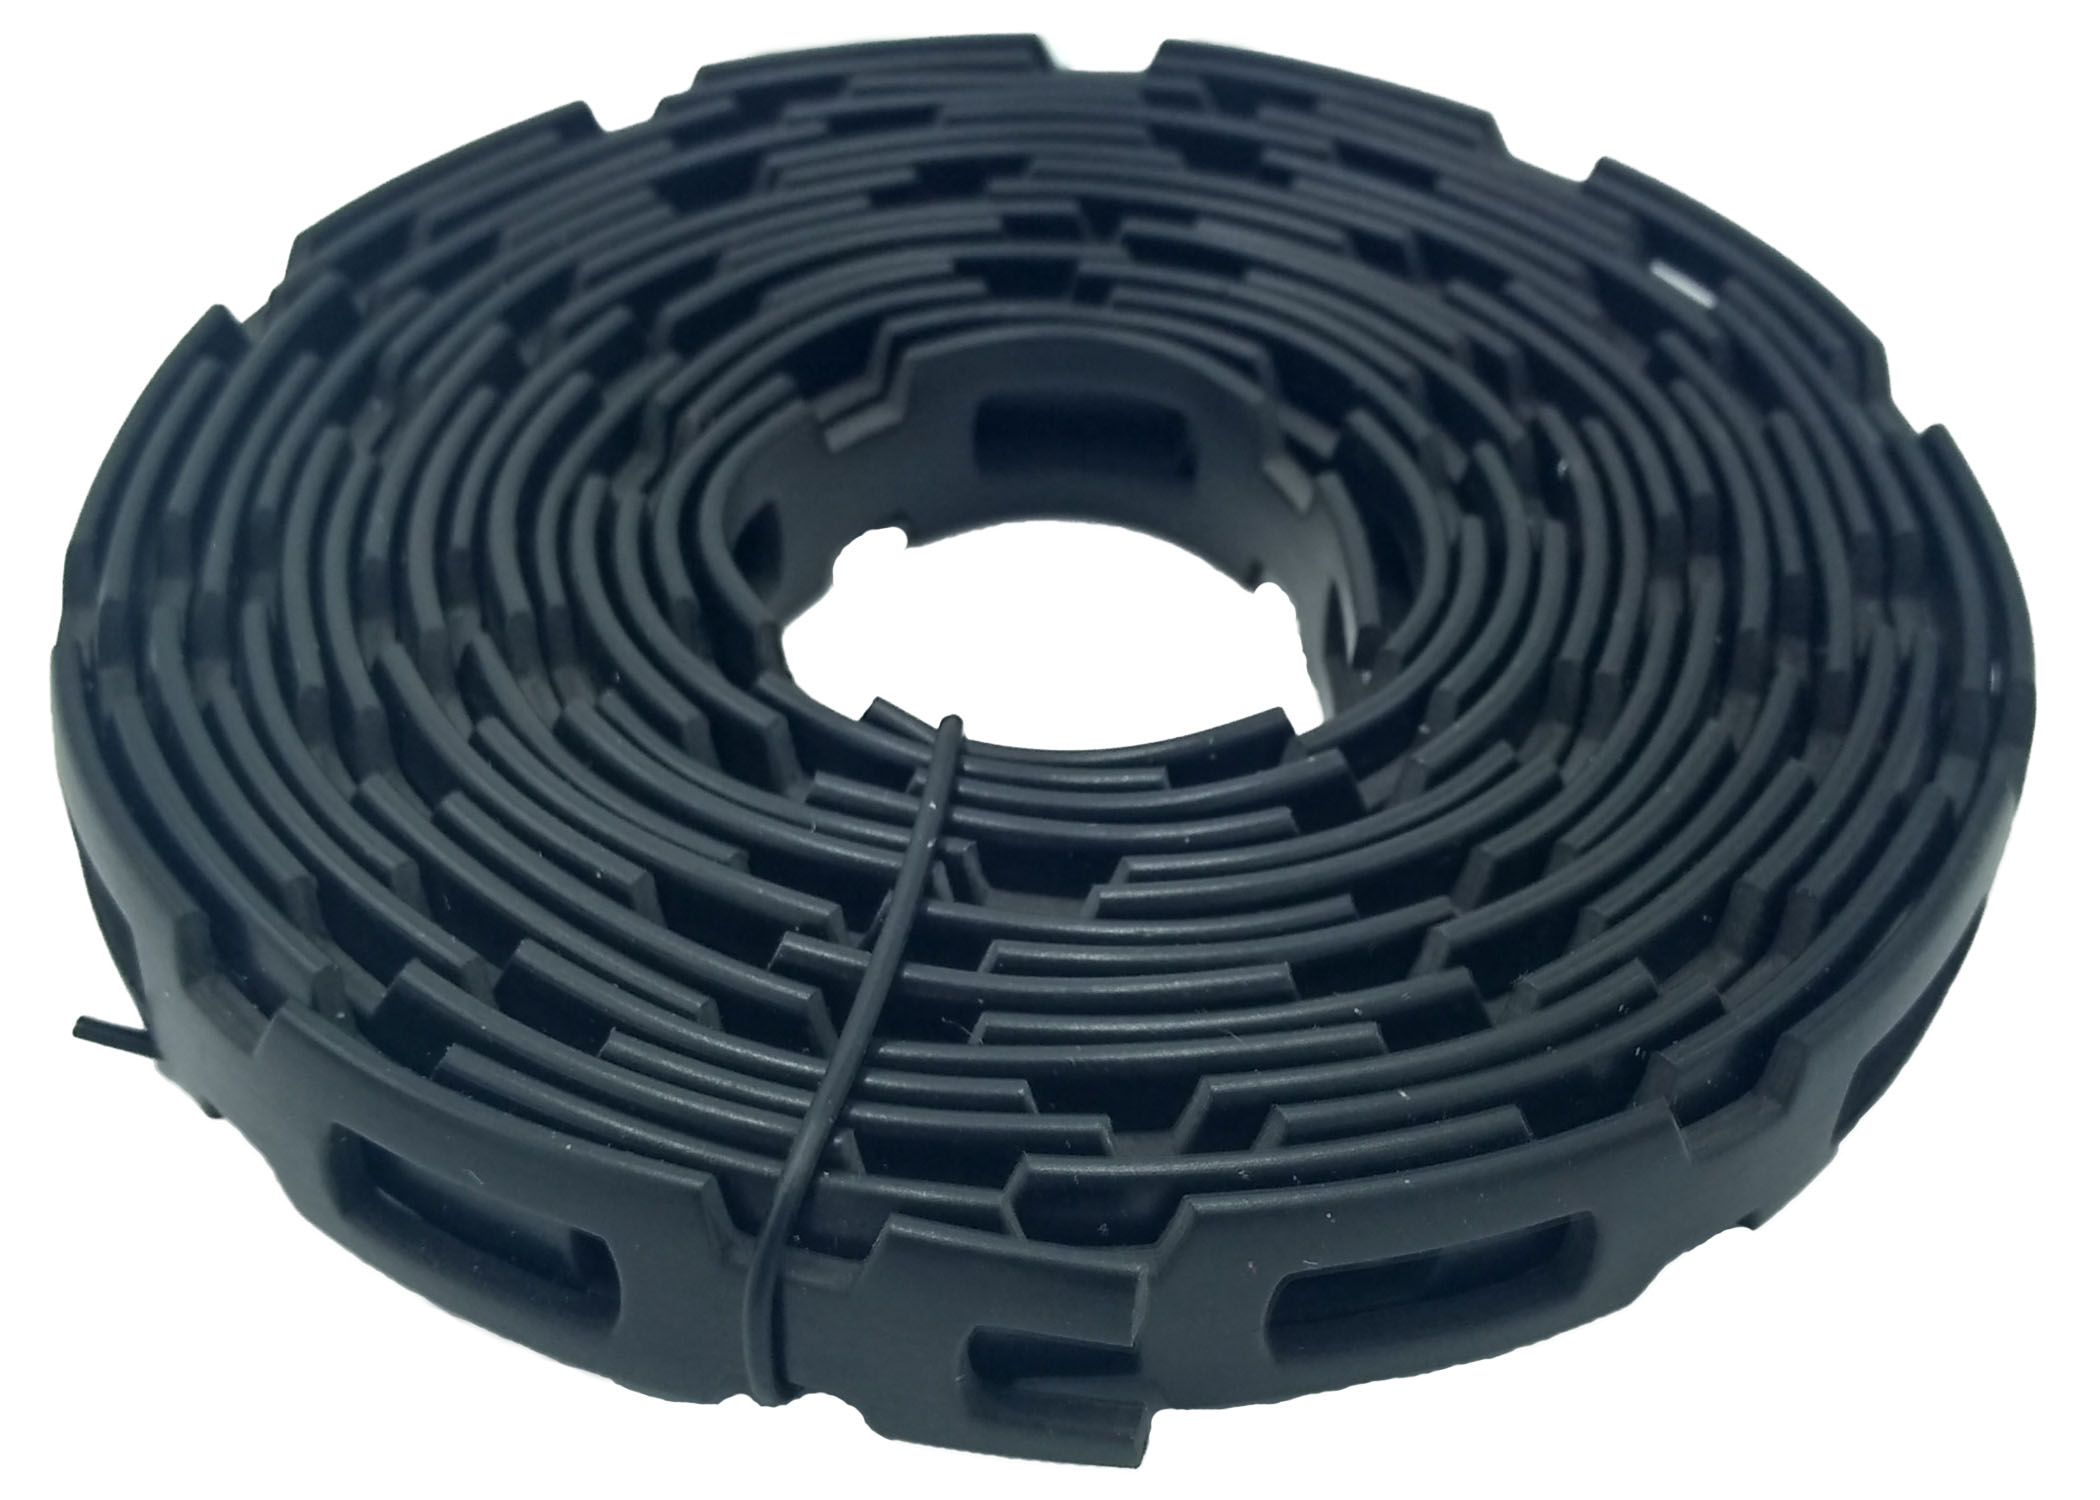 Zenport GA305 Chain Lock Tie, 9.84-Feet Roll, Black